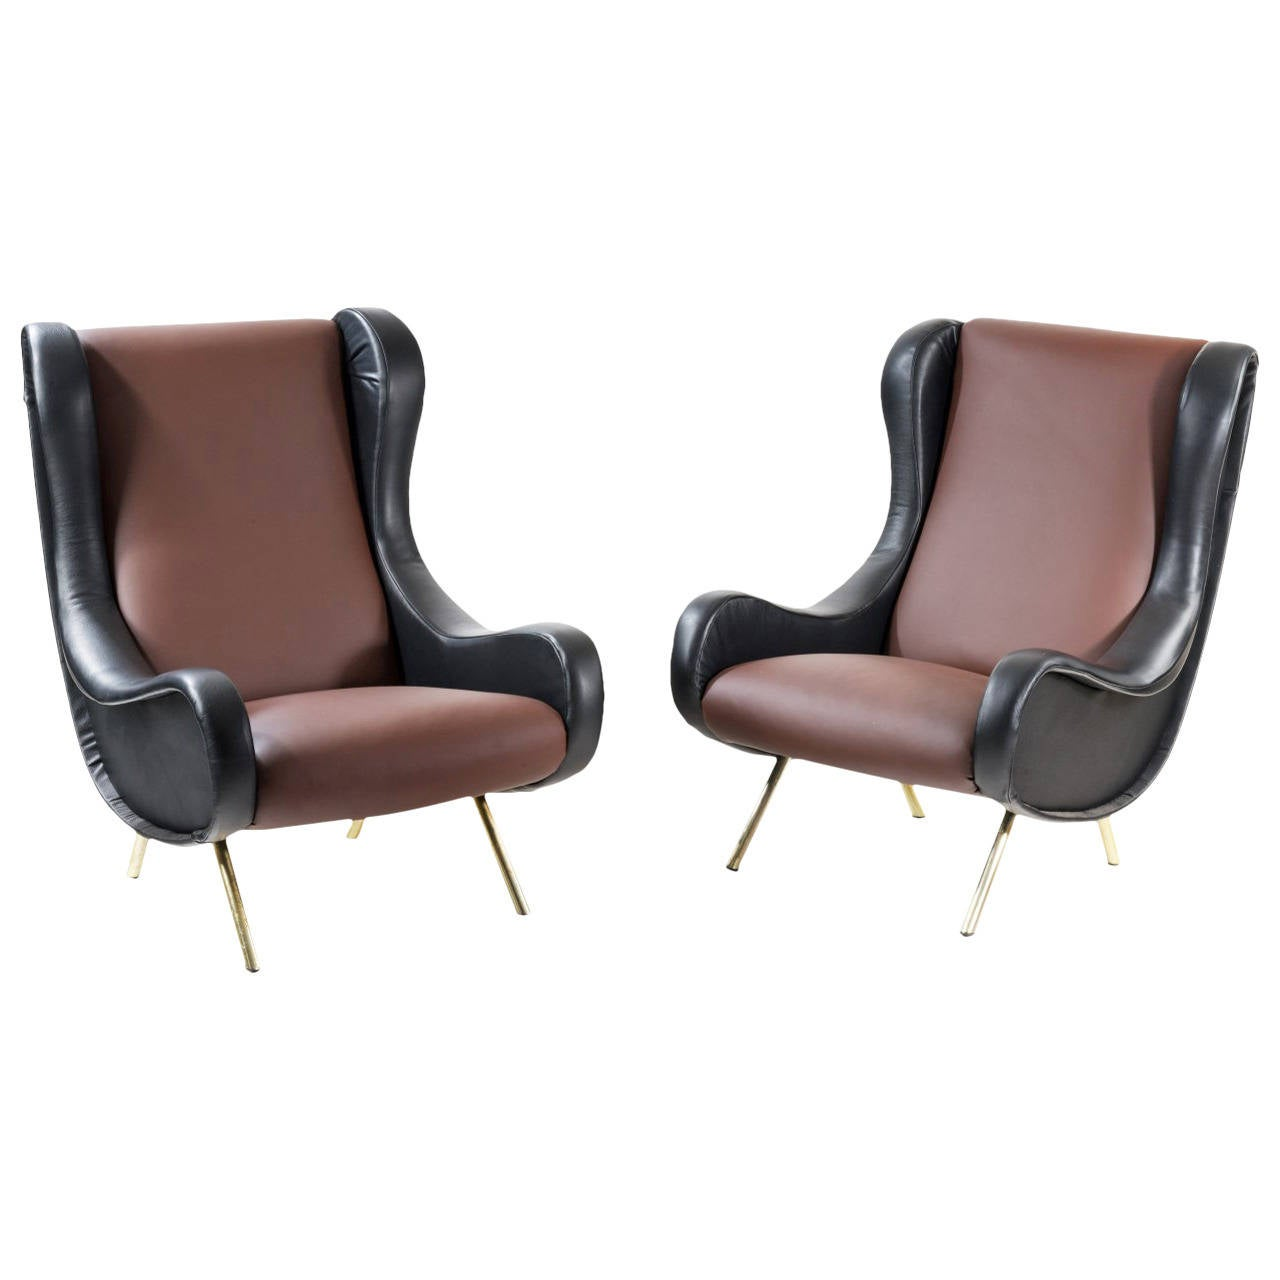 Pair of Armchairs, Model 'Senior' by Marco Zanuso 1